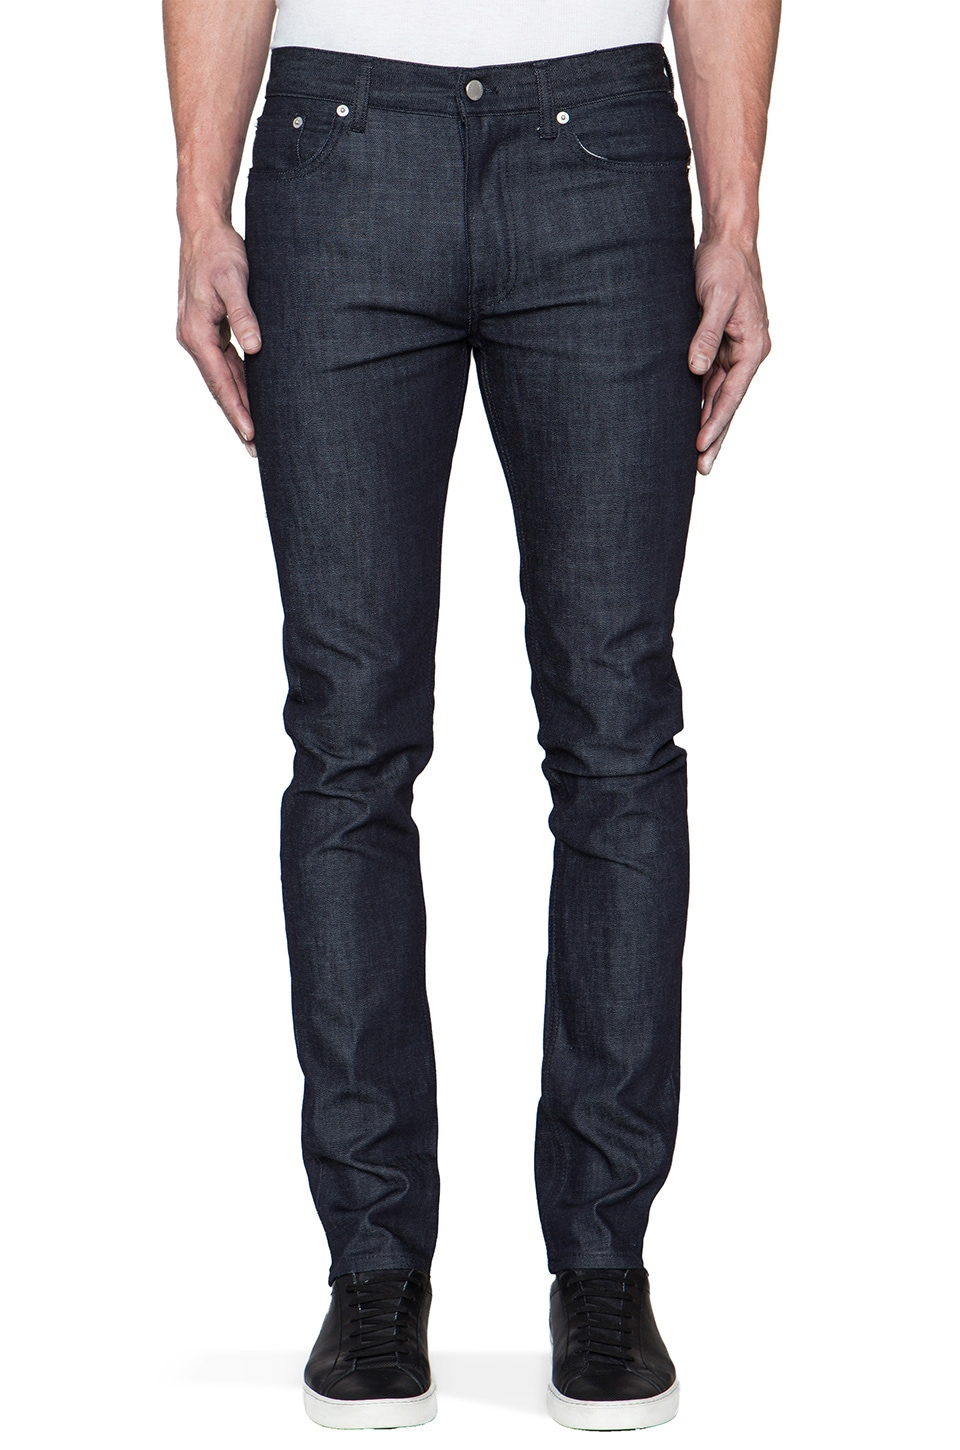 BLK DNM Jeans 25 in Whitehall Blue